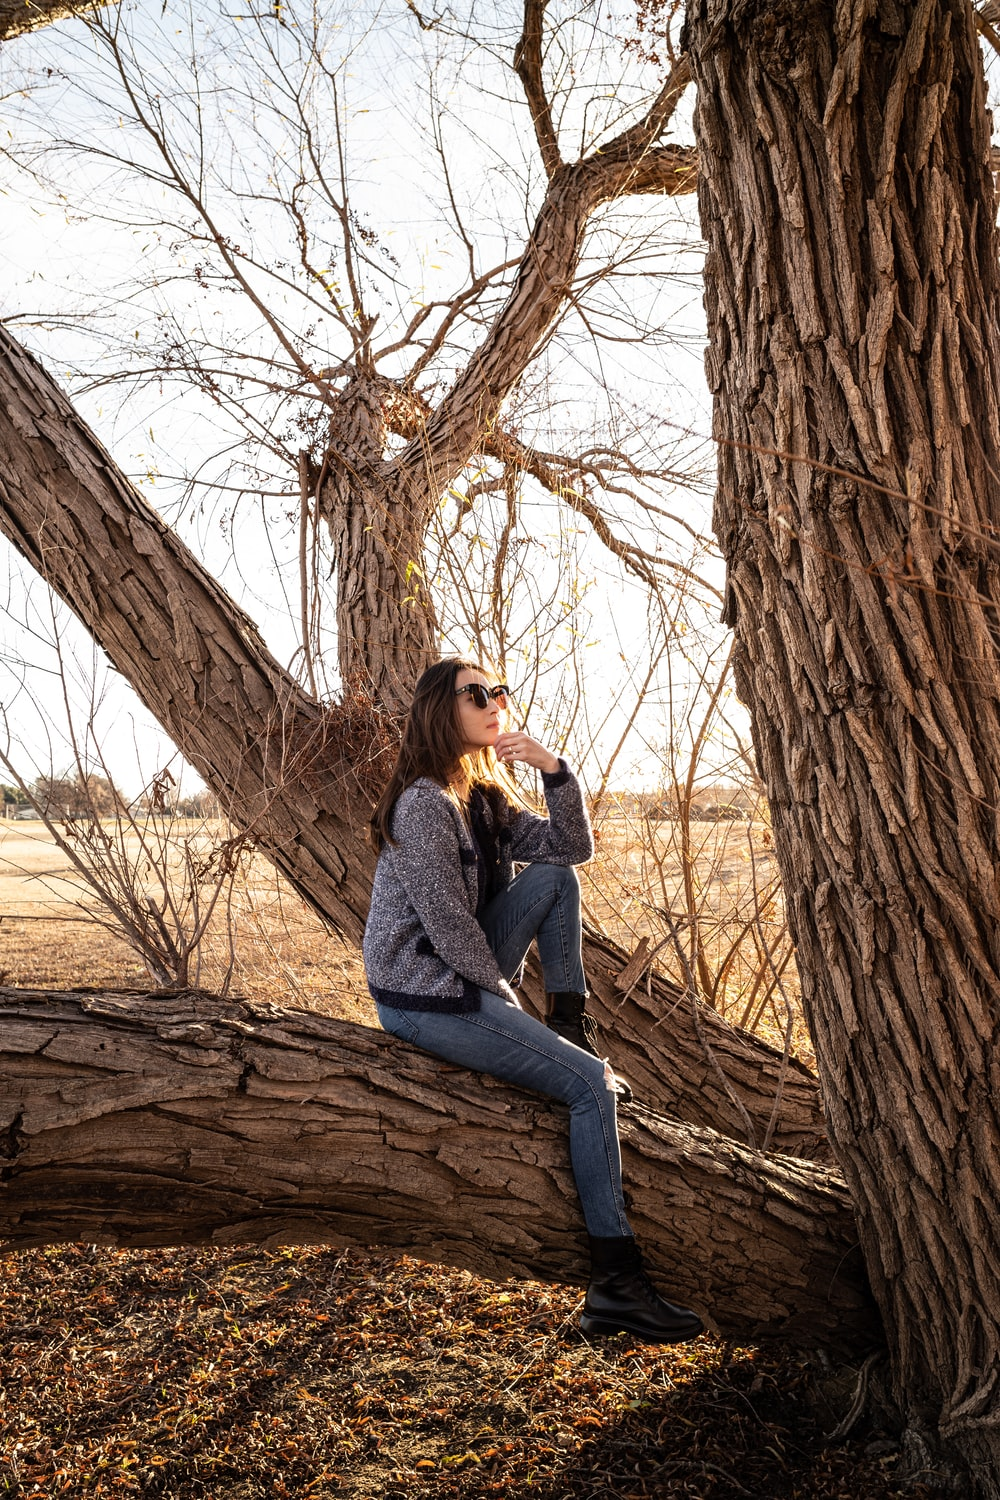 shallow focus photo of woman in gray jacket sitting on tree branch